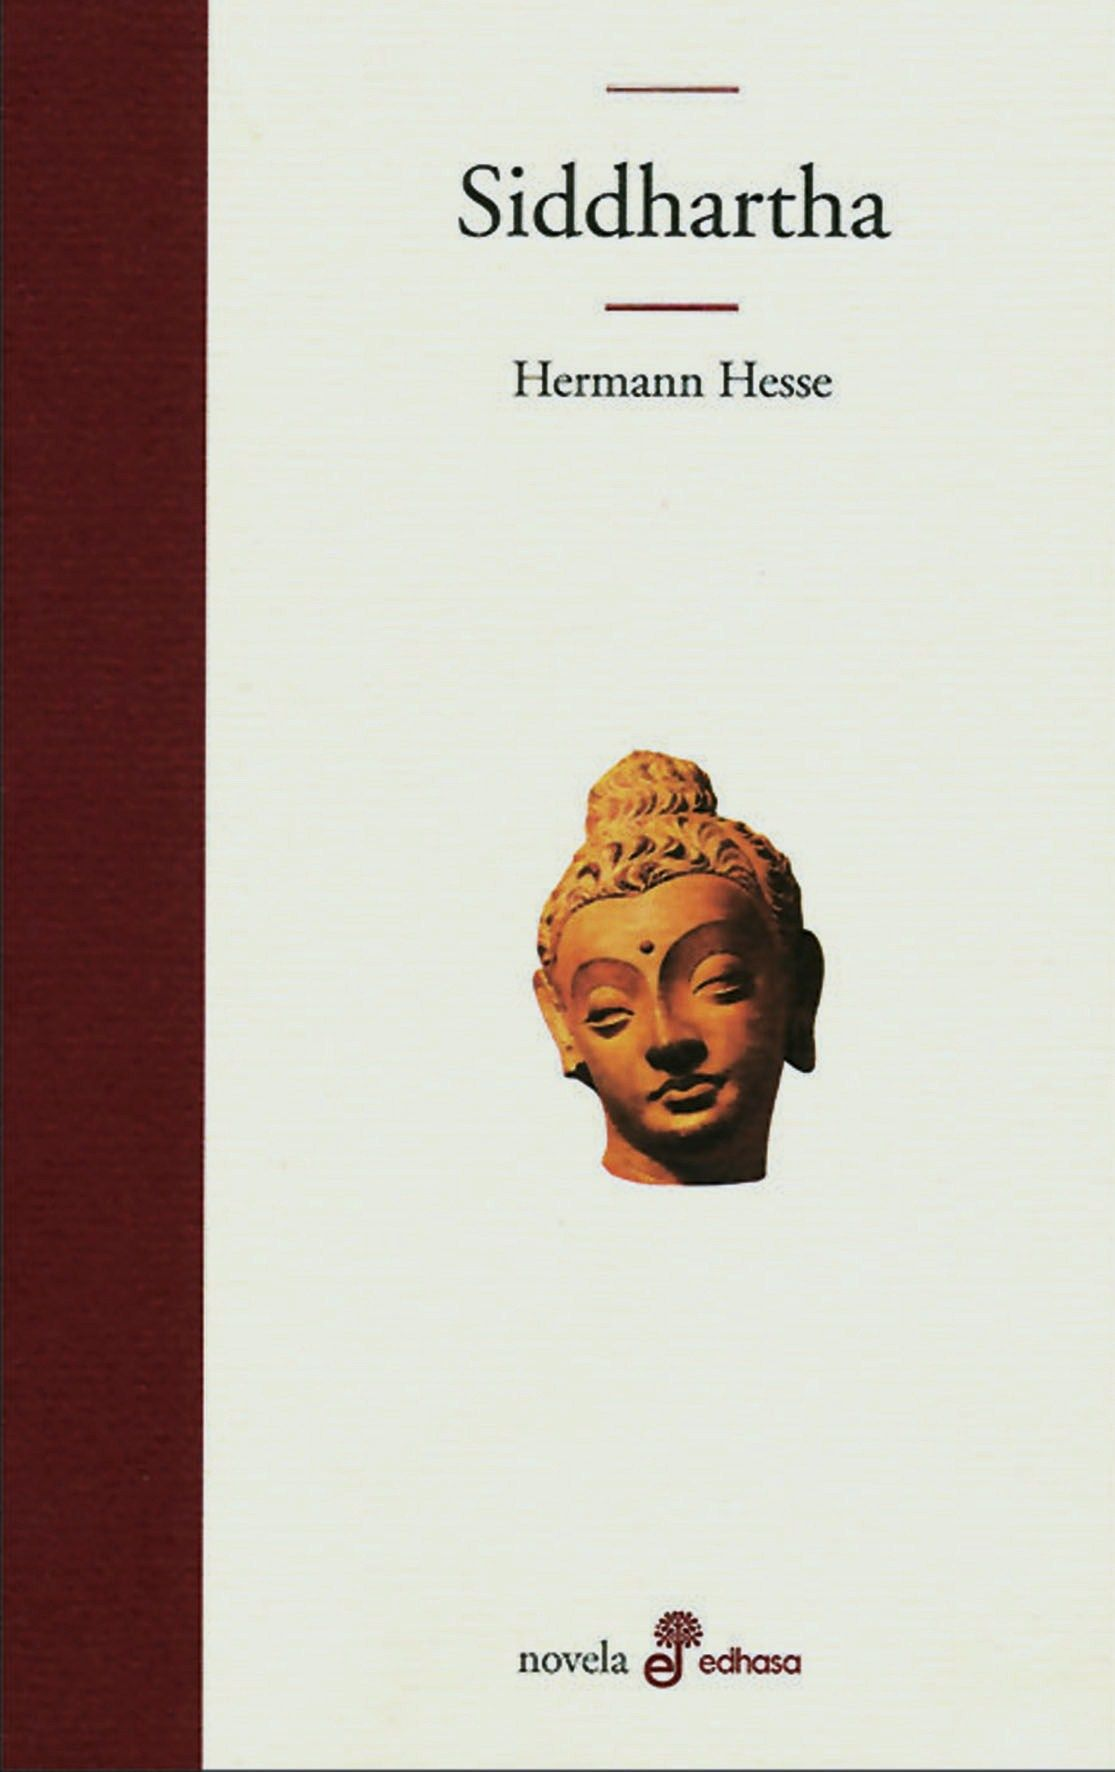 the significance of herman hesses novel siddhartha Originally published in 1922, the book came to achieve great cultural significance in the 1960s and is today counted amongst one of herman hesse's finest works premise like its eponymous protagonist, the novel breaks down in several milestones or turning points that signal the development of the story and the growth of the character.